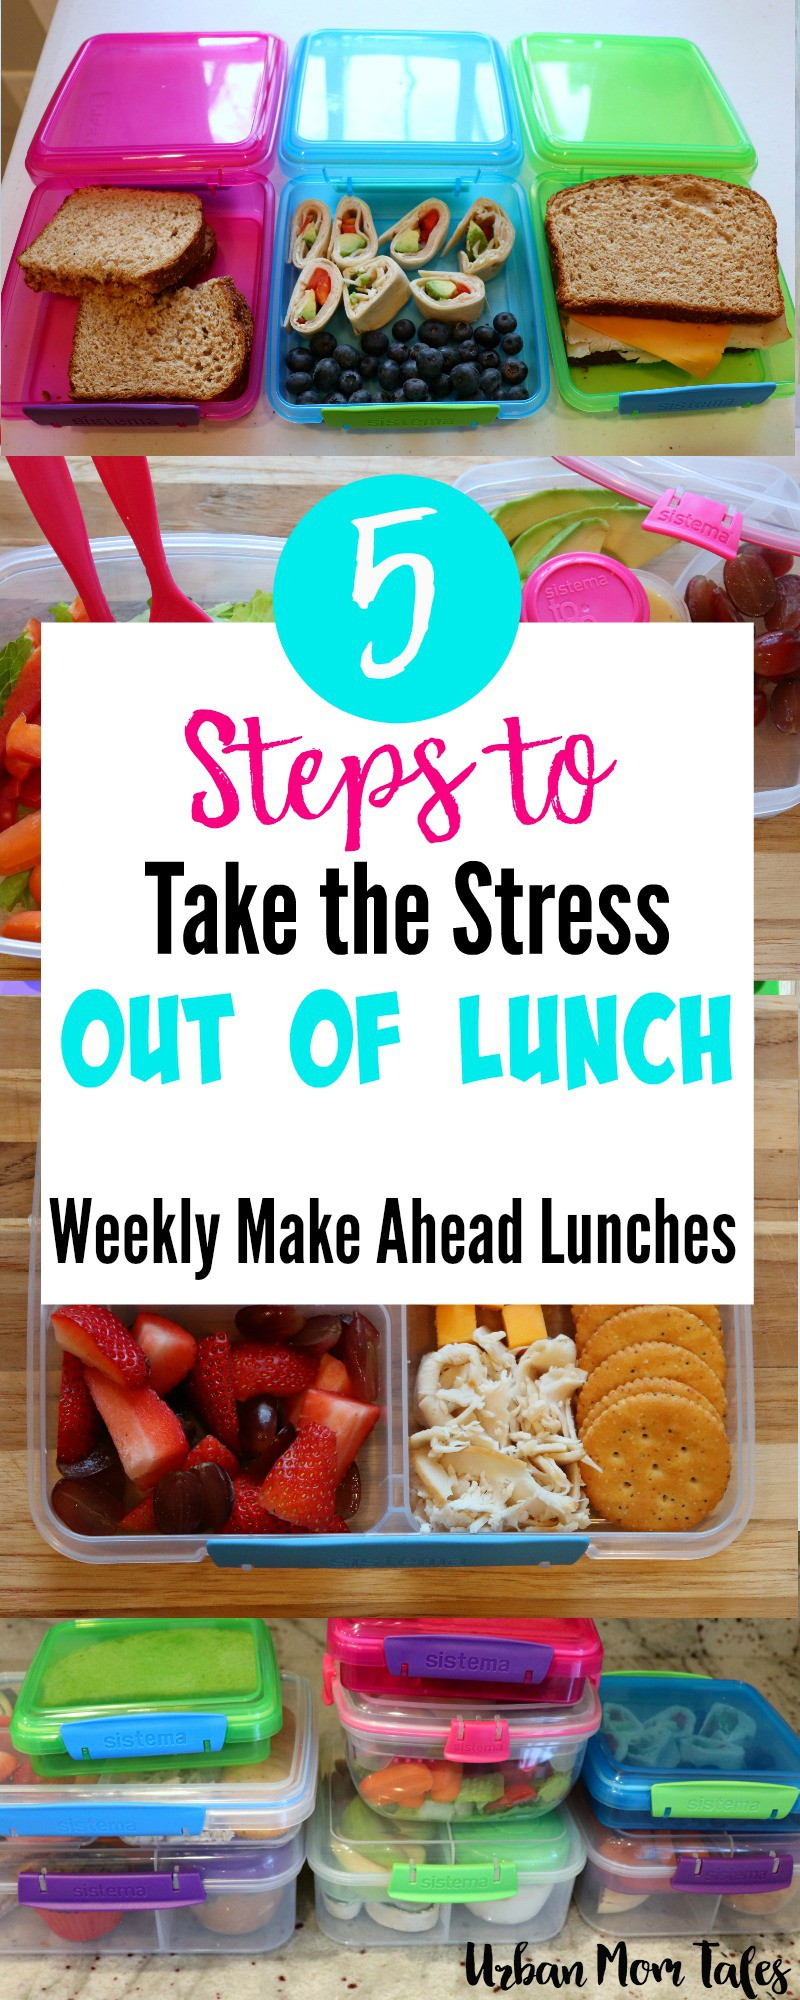 5 Steps to Take the Stress out of Lunch! (Weekly Make Ahead Lunches)